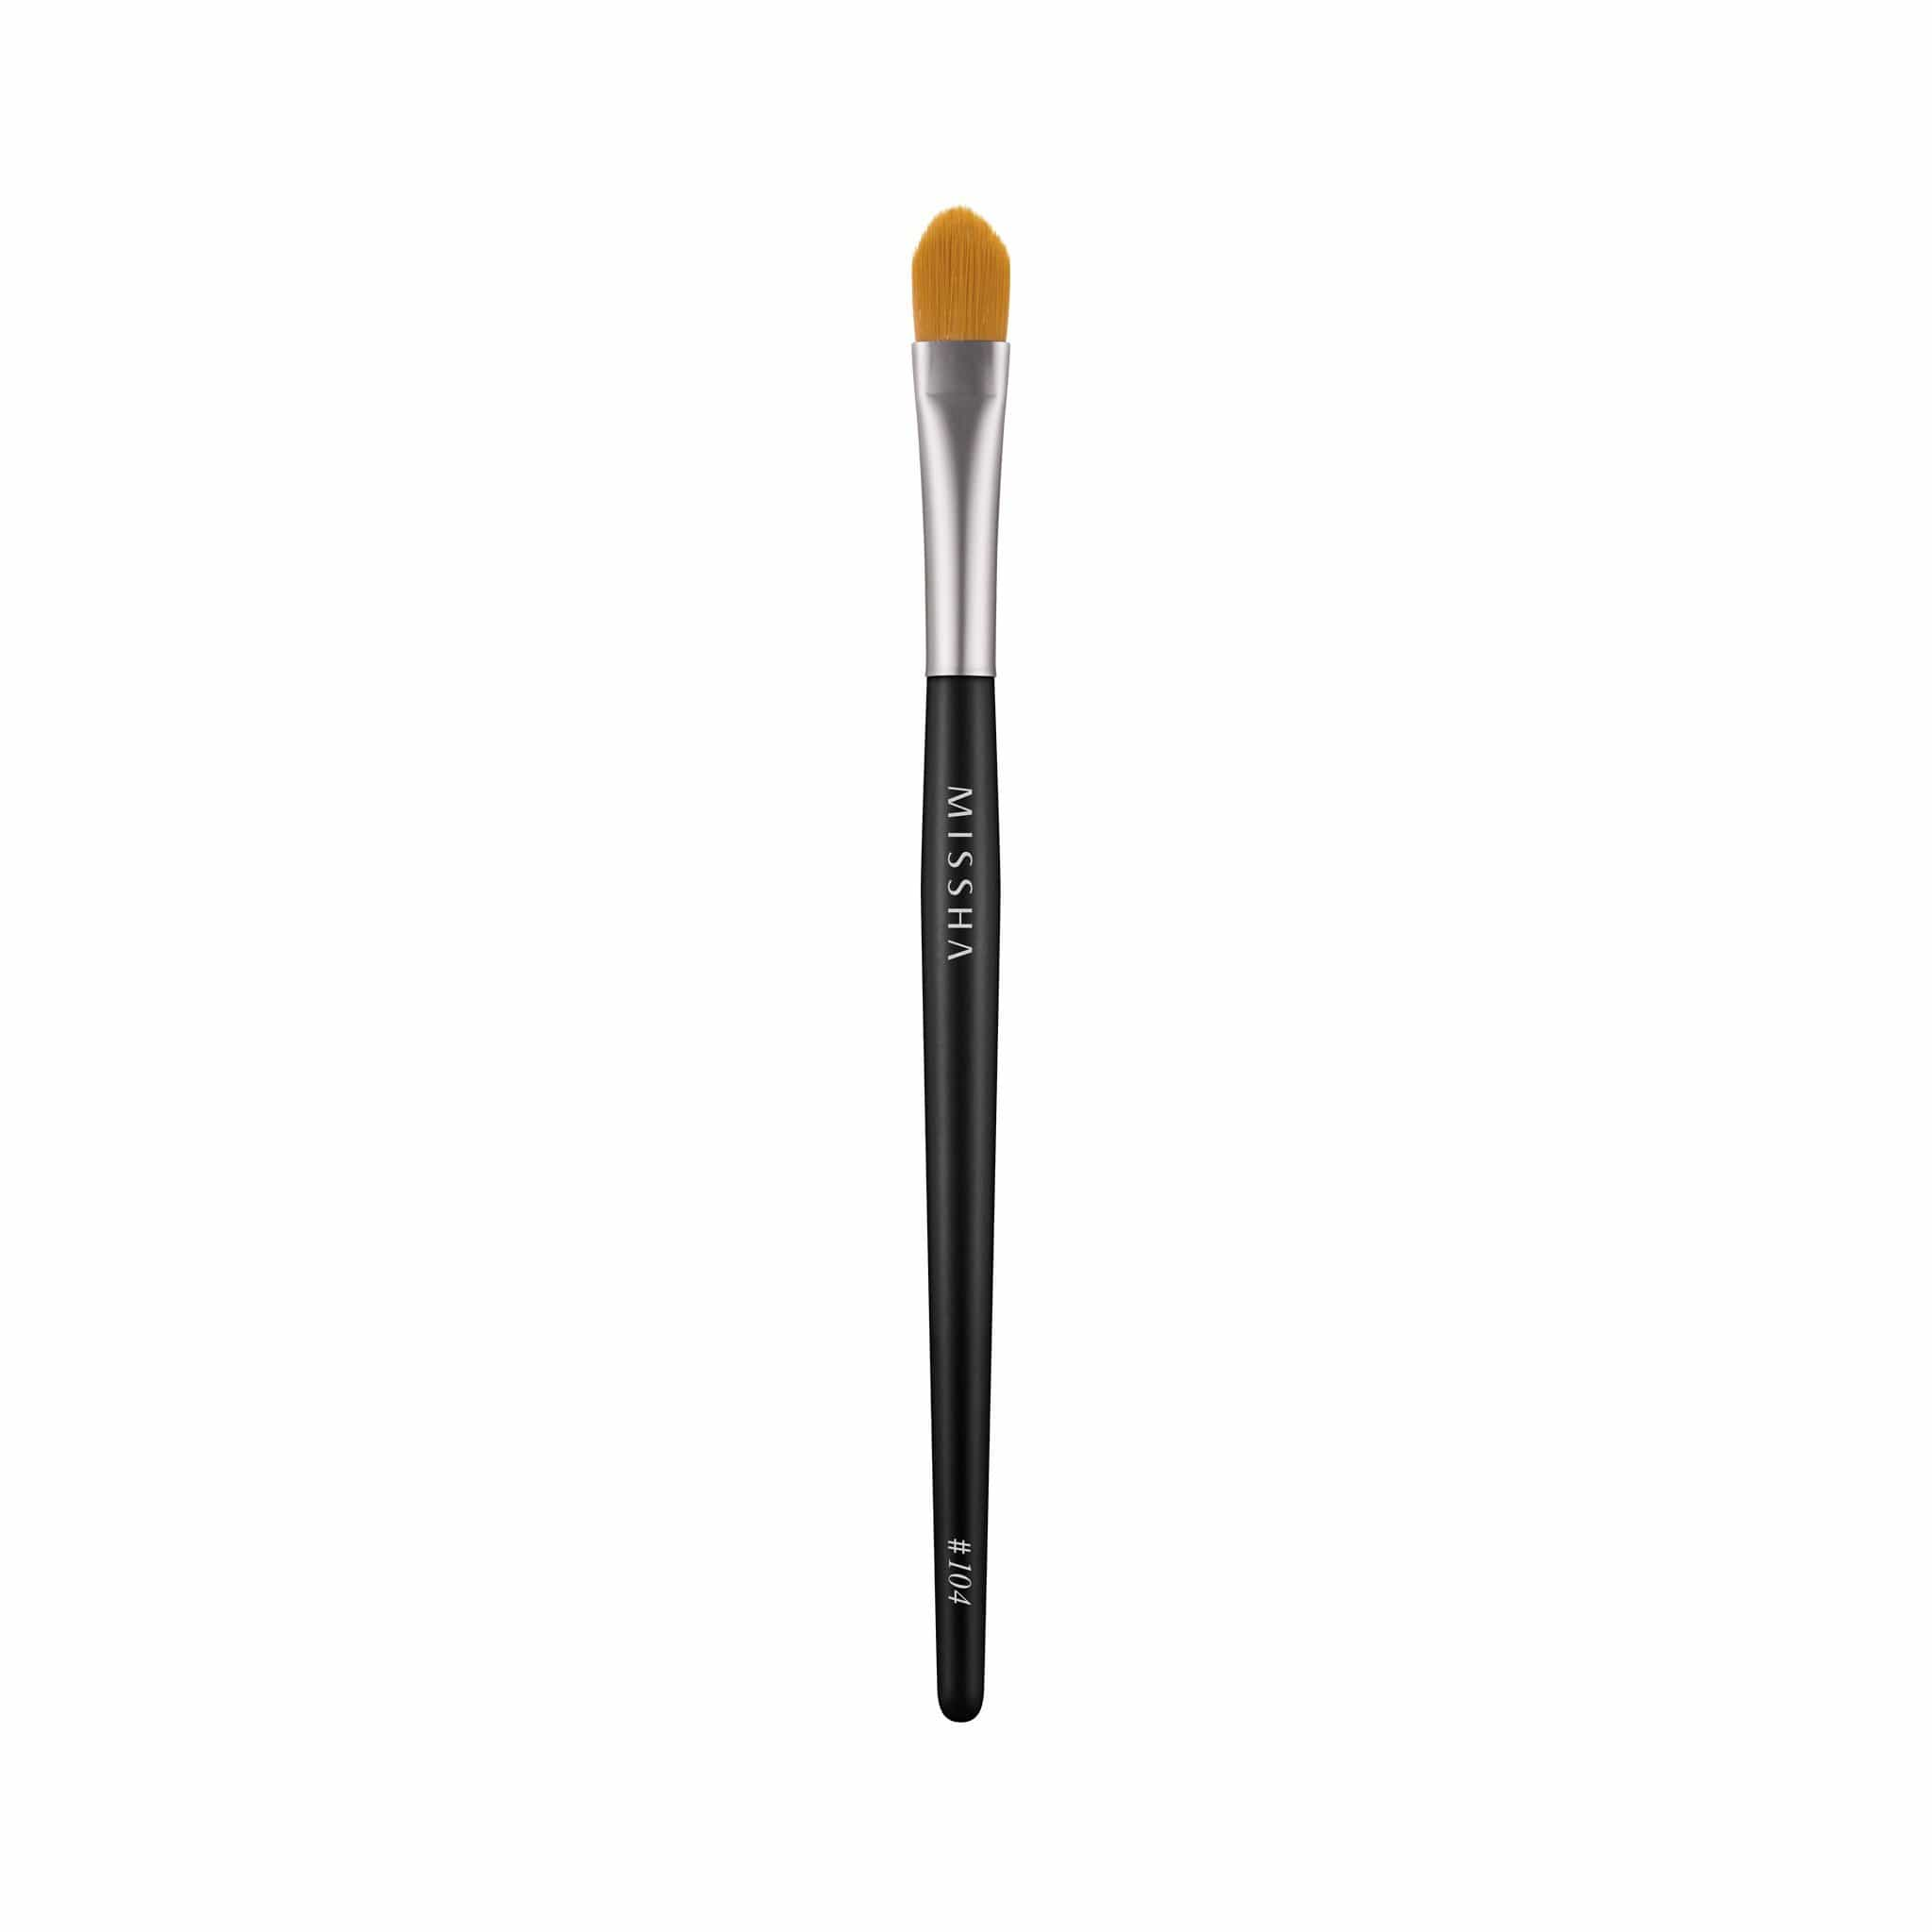 ARTISTOOL CONCEALER BRUSH #104 - MISSHA